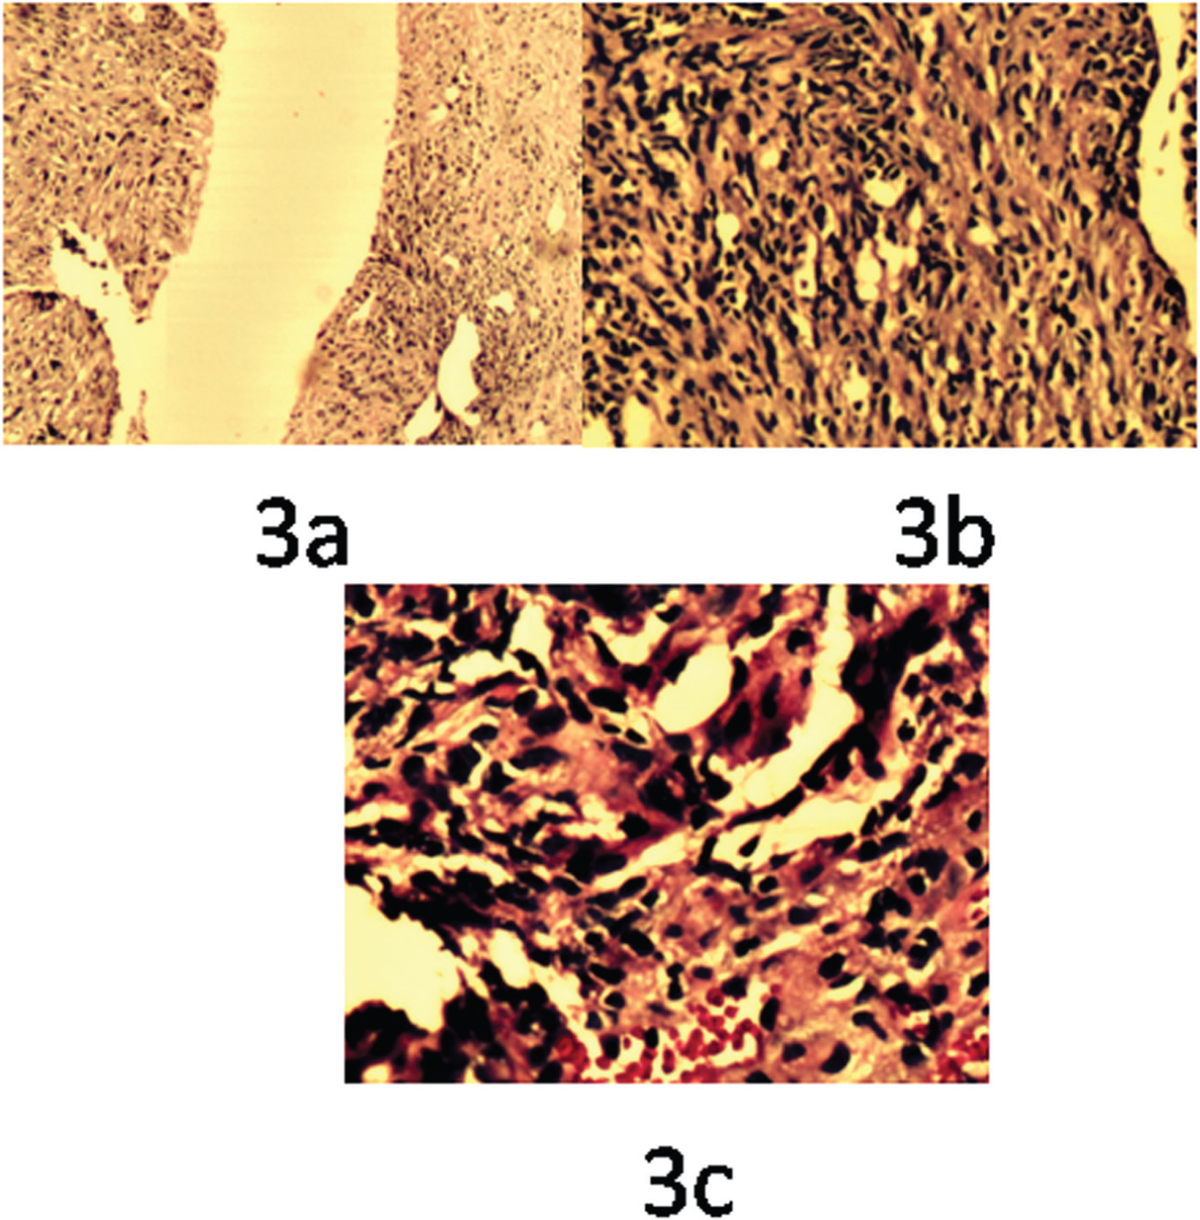 Figure 3 Trucut biopsy of lung on histopathological examination (HPE) with H&E stain showing spindle-cell tumor with fascicular arrangement of tumor cells. Individual cells showing hyperchromatic nuclei, inconspicuous nucleolar (pleomorphism and mitosis with necrosis) (a and b). Pleural biopsy on HPE with H&E stain showing mesothelial proliferation and foci of atypical spindle cell proliferation (c)